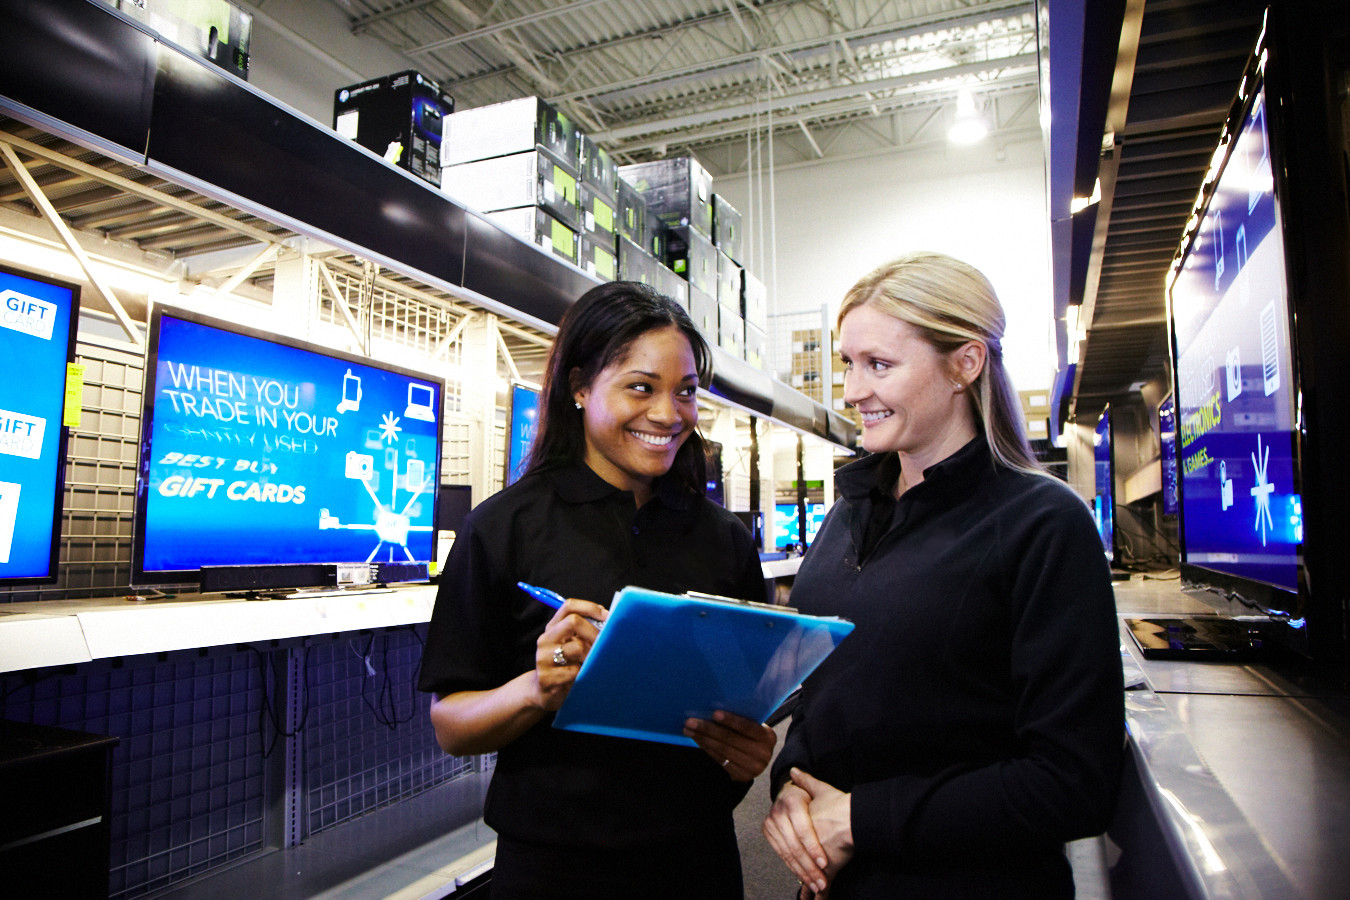 Two sales reps working in a retail store